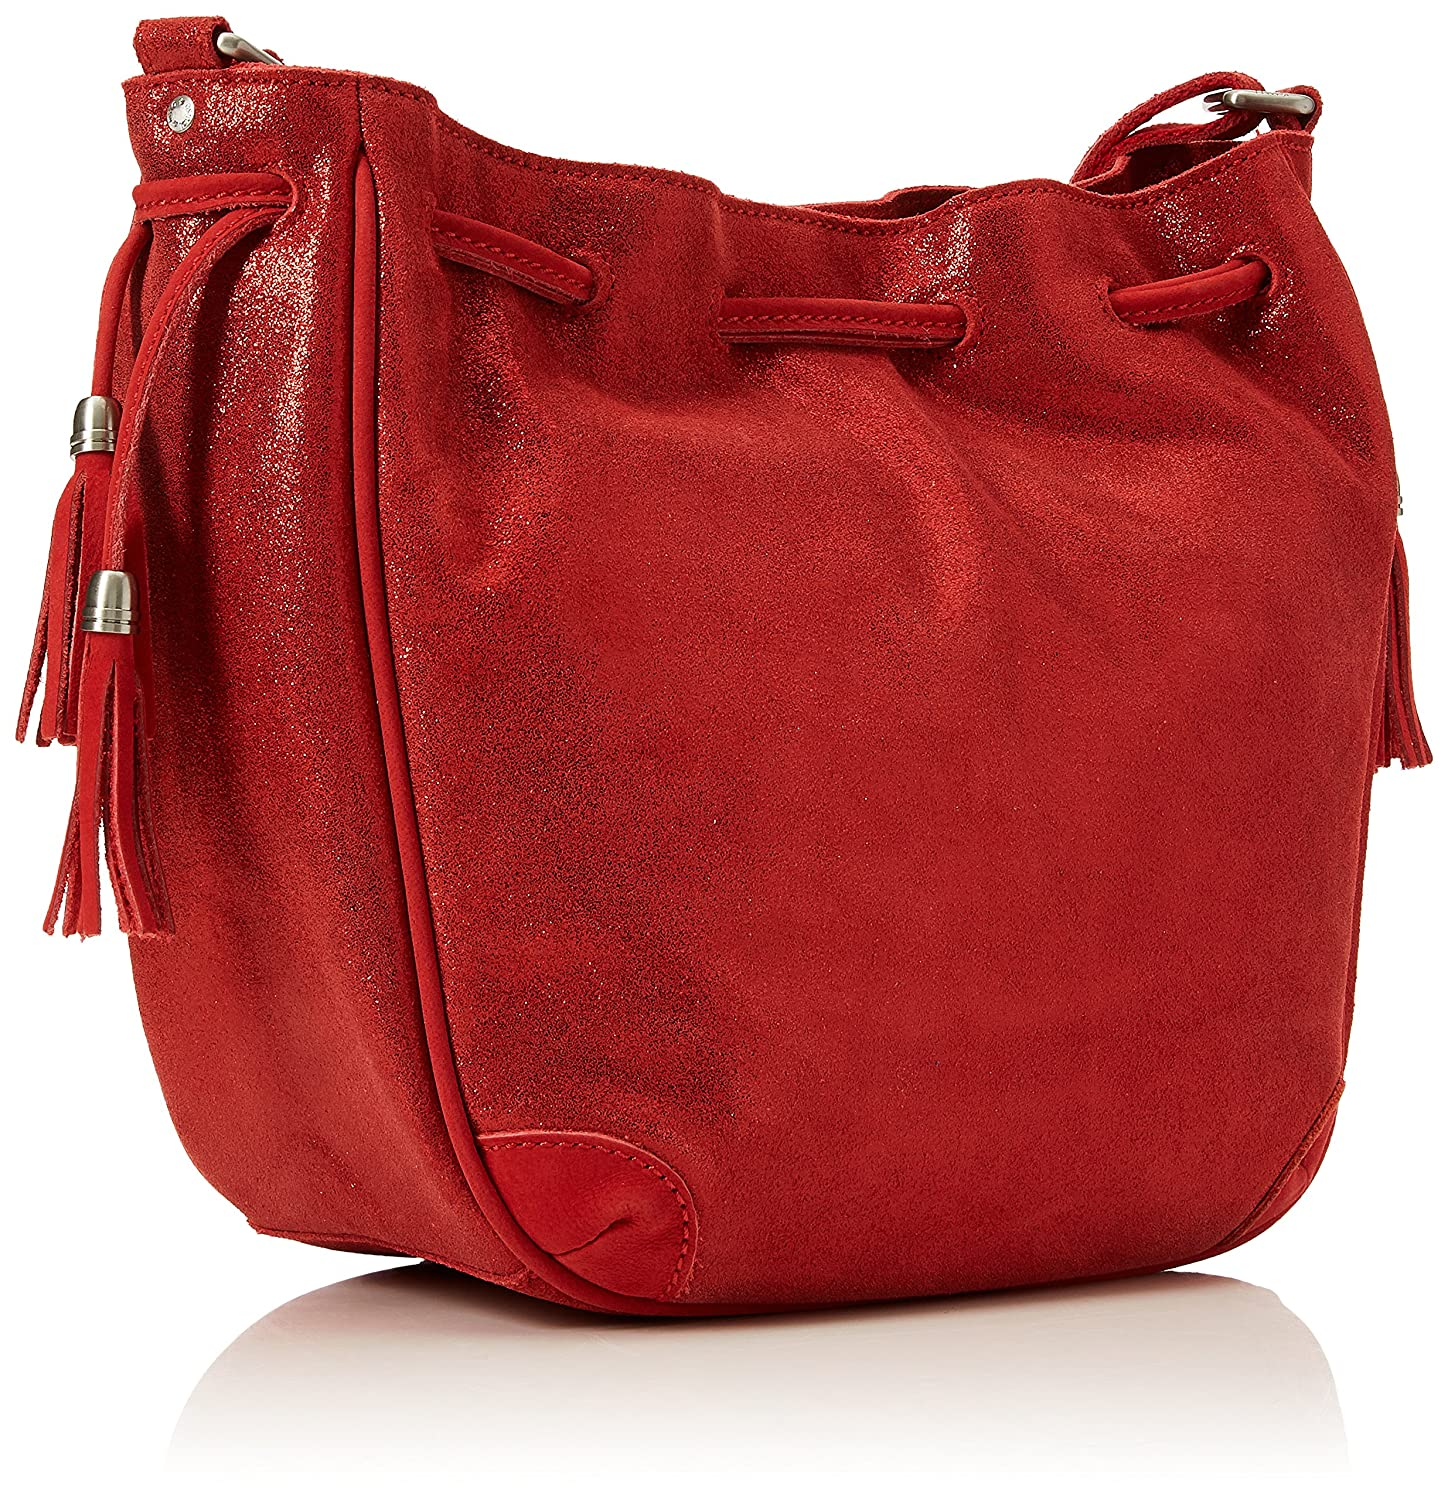 Buy Cheap Affordable Outlet Pay With Visa Statement Clutch - HANABIRA by VIDA VIDA Newest Cheap Online Nicekicks Cheap Online Clearance Clearance Store SoVslBnV